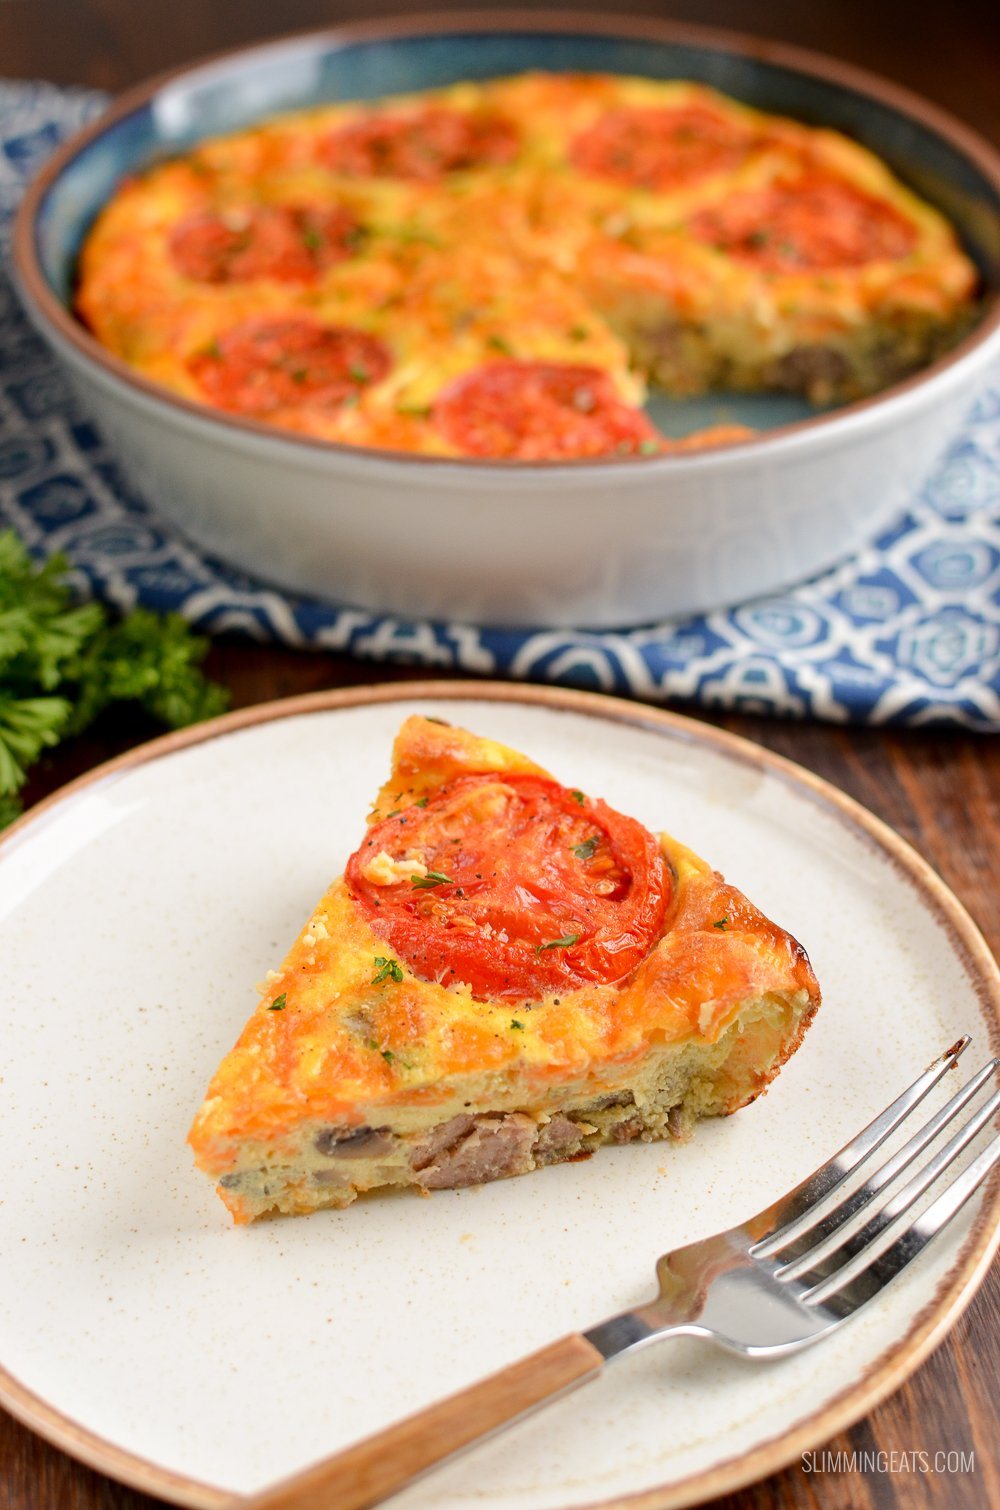 slice of breakfast quiche on a white plate with fork